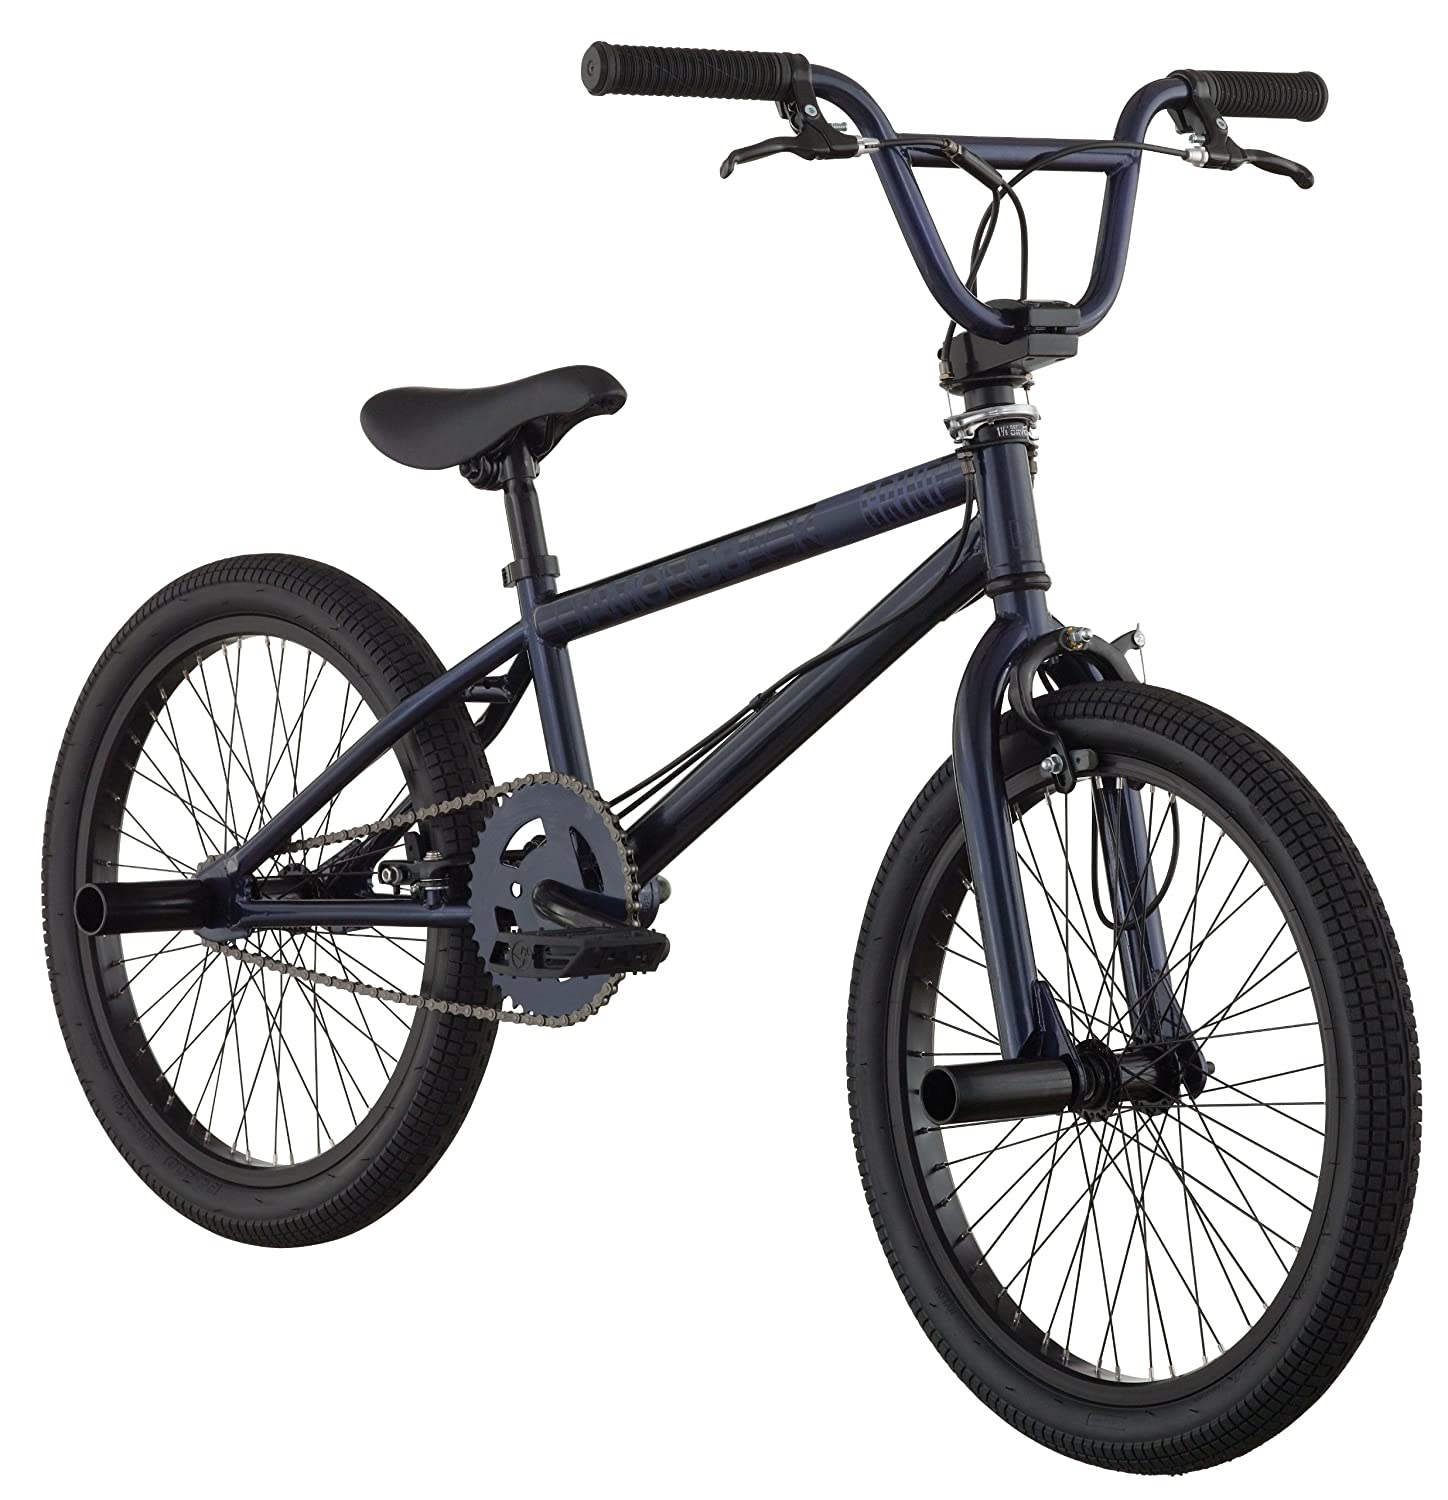 Boy Diamondback Bmx Bikes